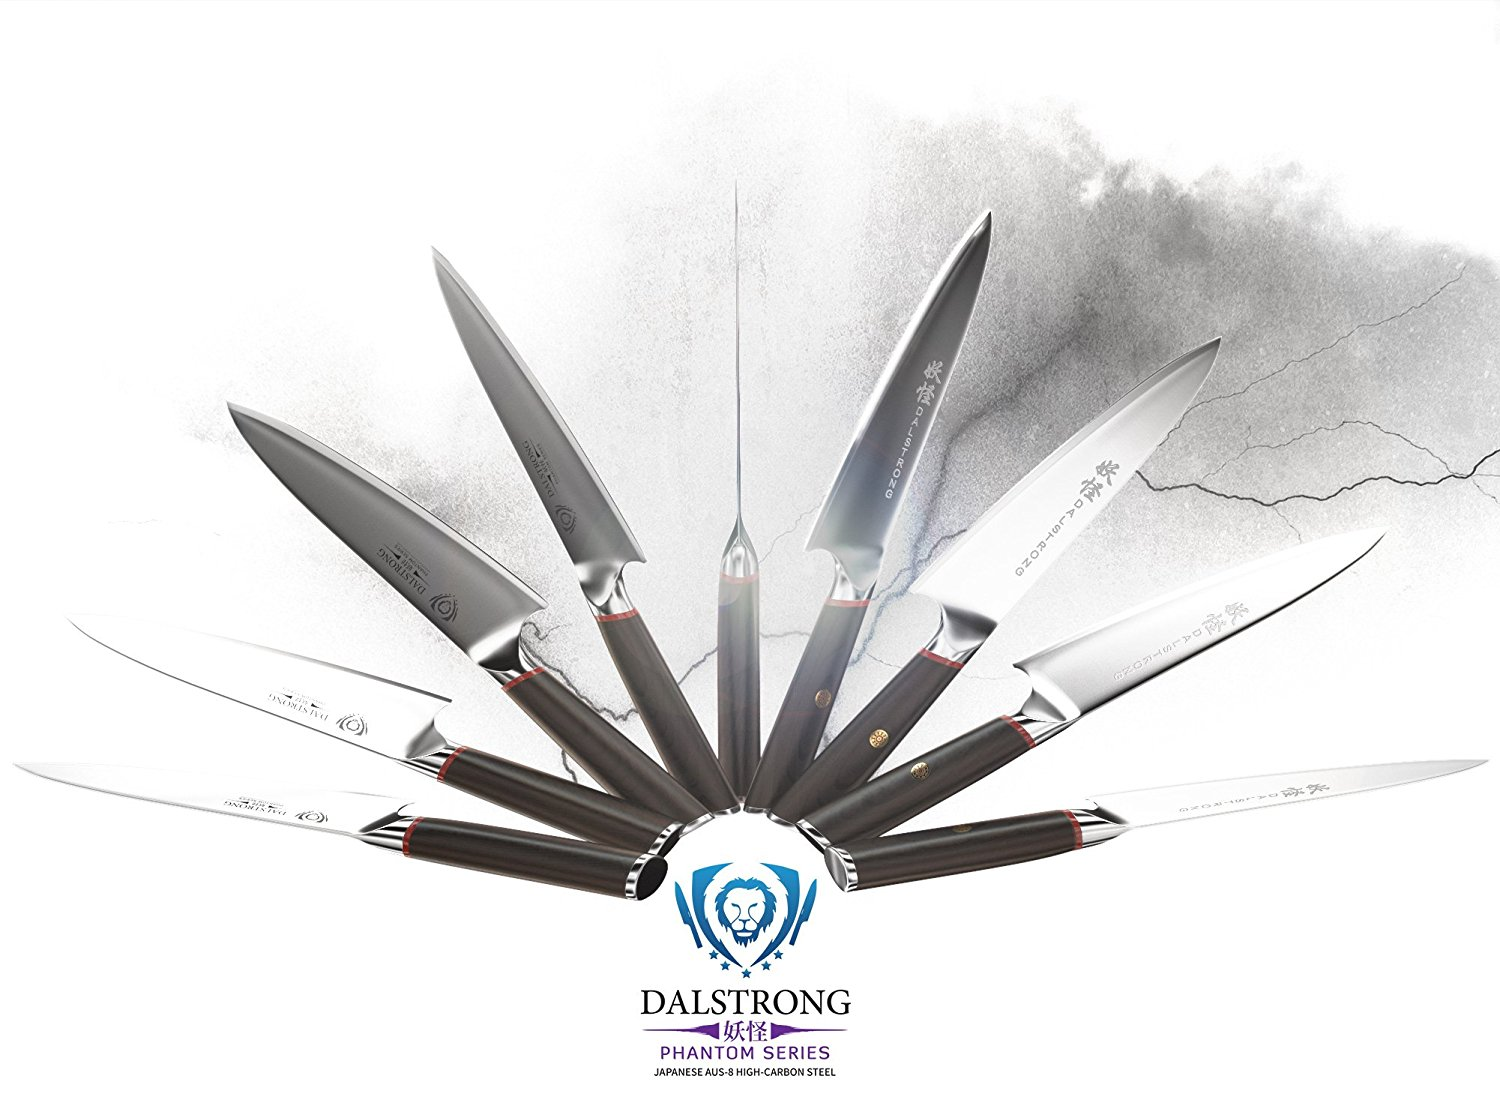 DALSTRONG Chef Knife – Phantom Series – Japanese AUS8 Steel – 8inch-23